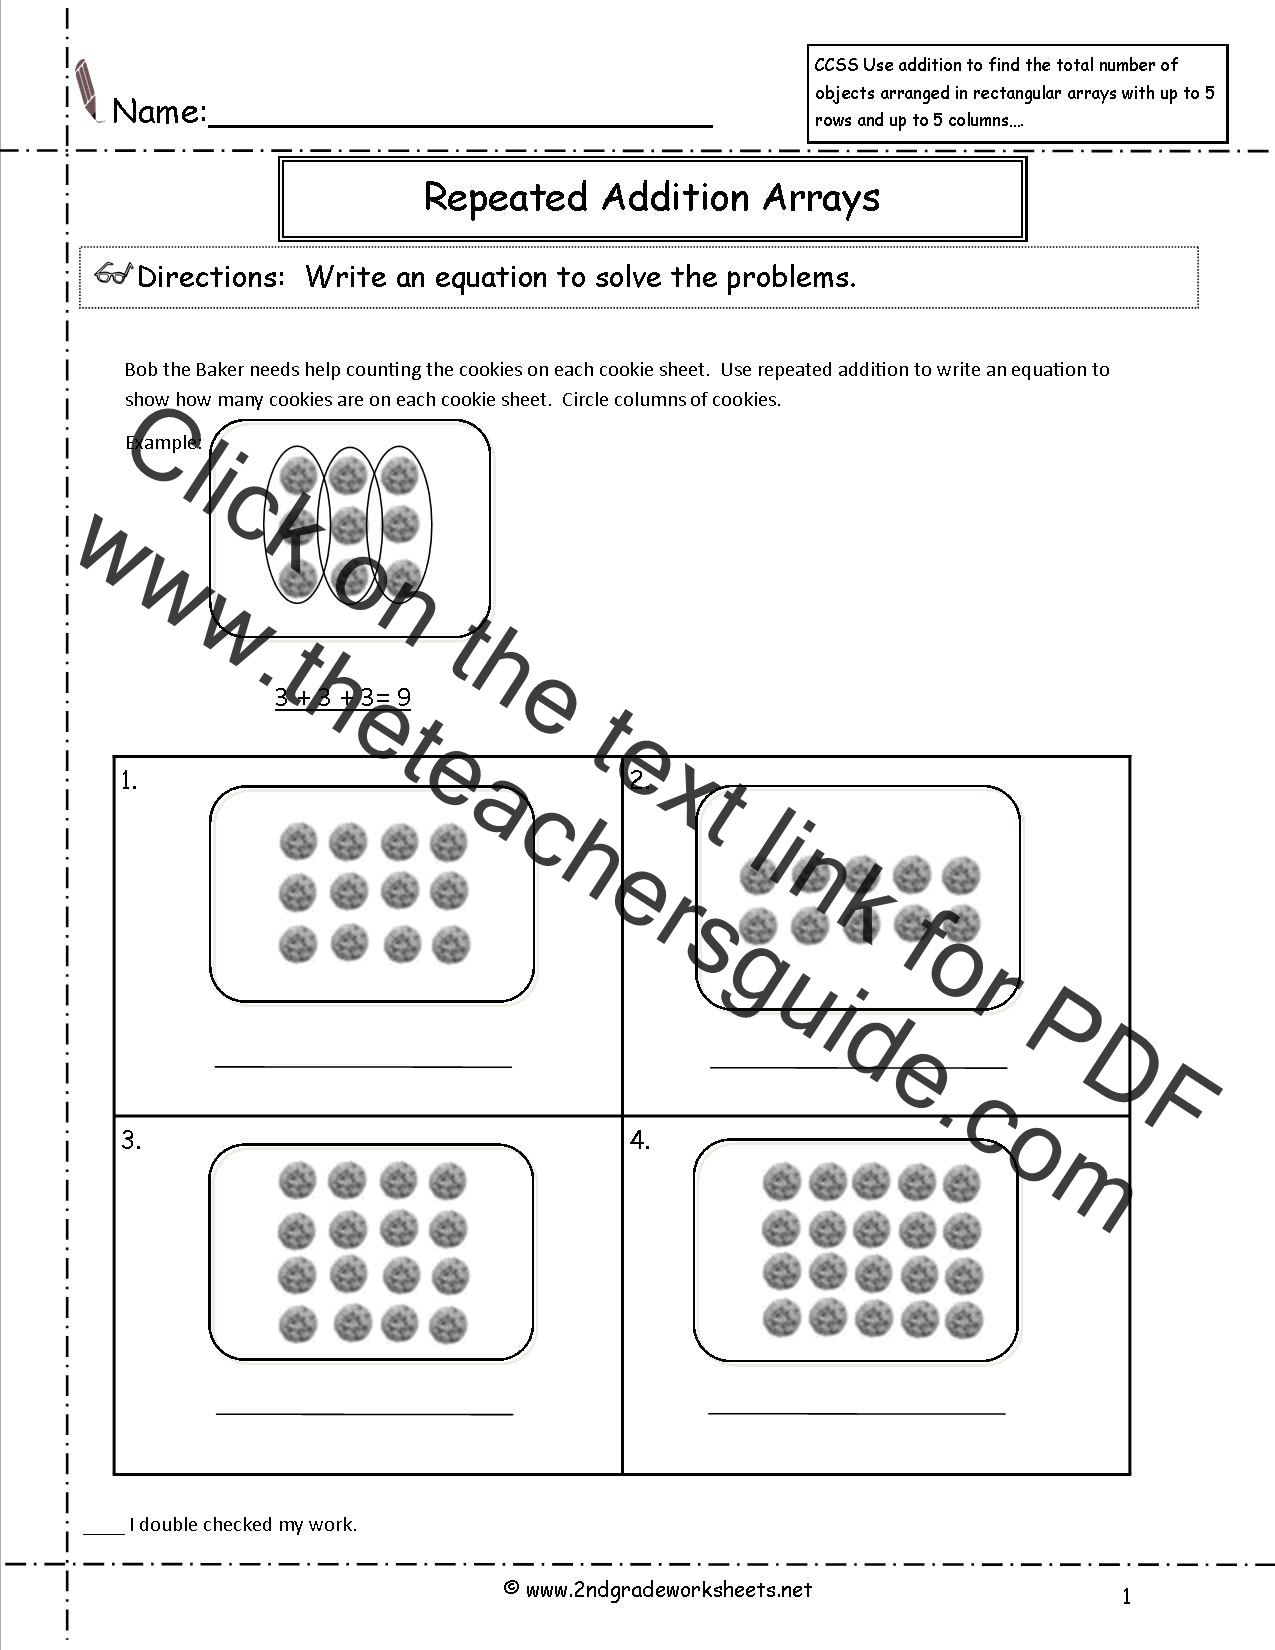 worksheet Common Core Math Grade 4 Worksheets 2nd grade math common core state standards worksheets ccss 2 oa 4 worksheets